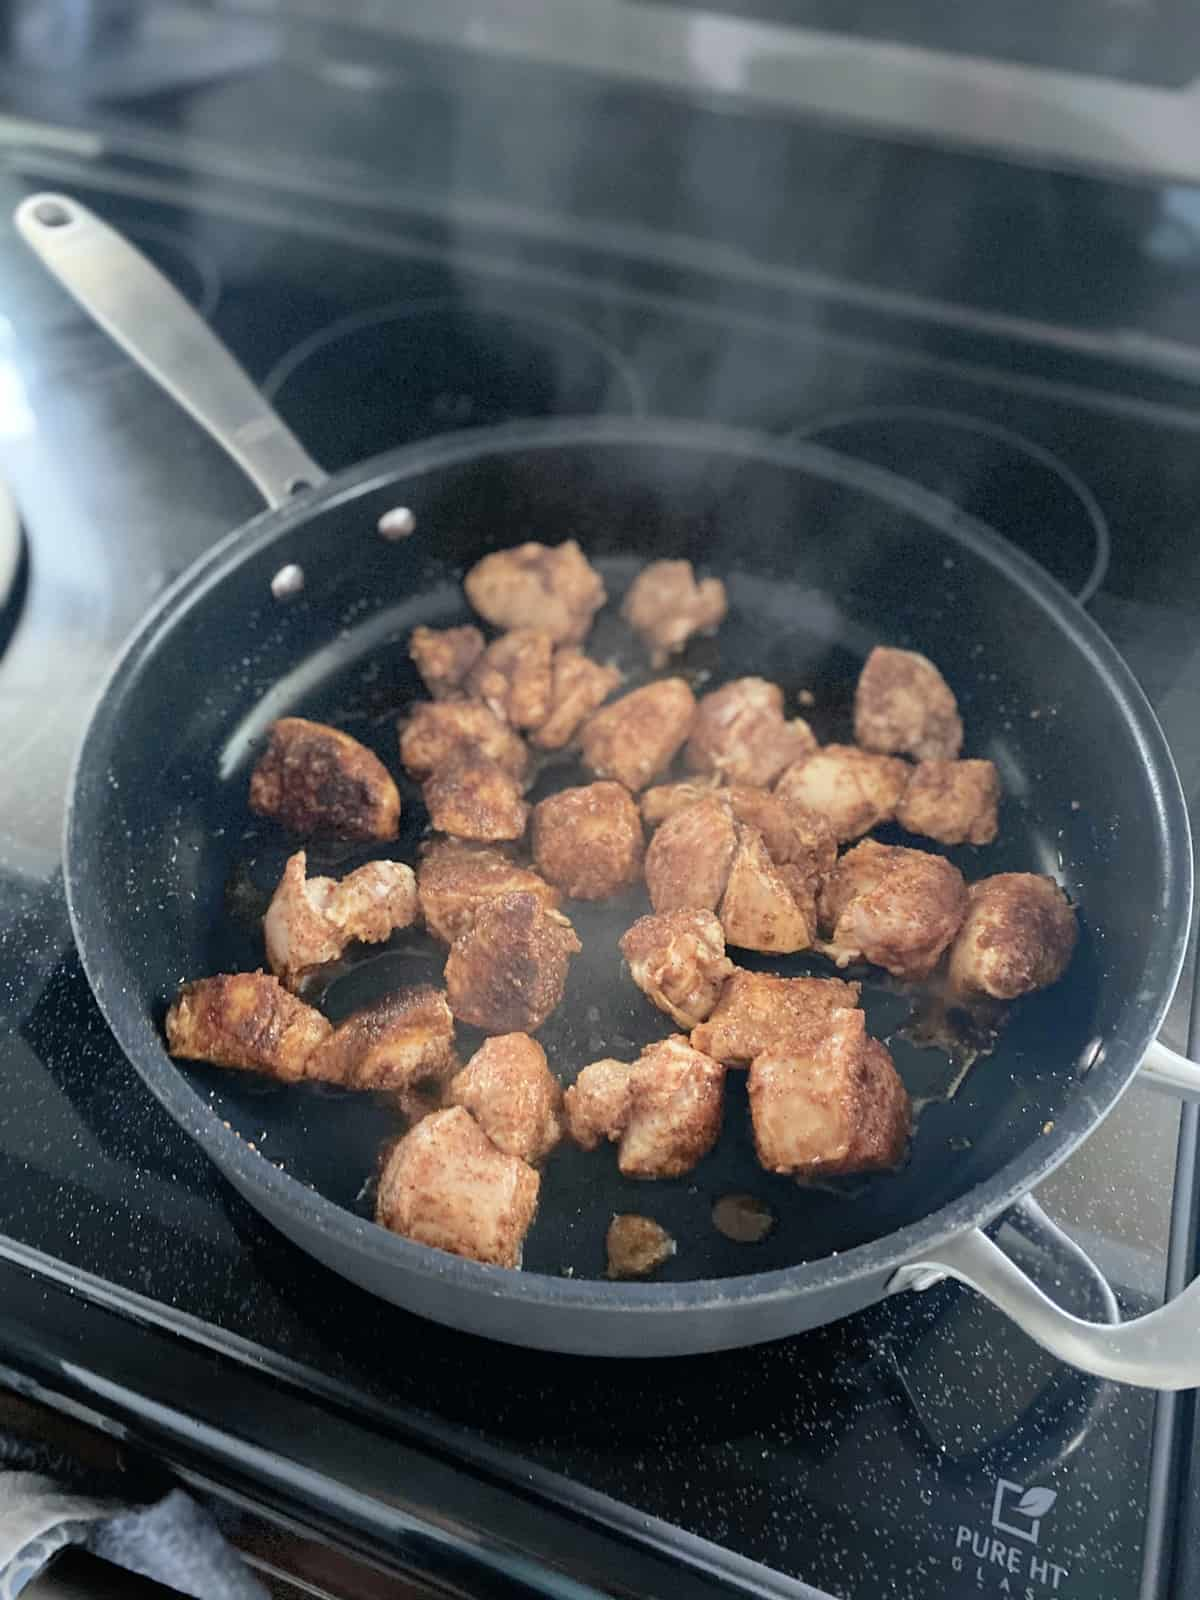 Skillet on a glass stove top cooking cubed chicken breast with seasoning.